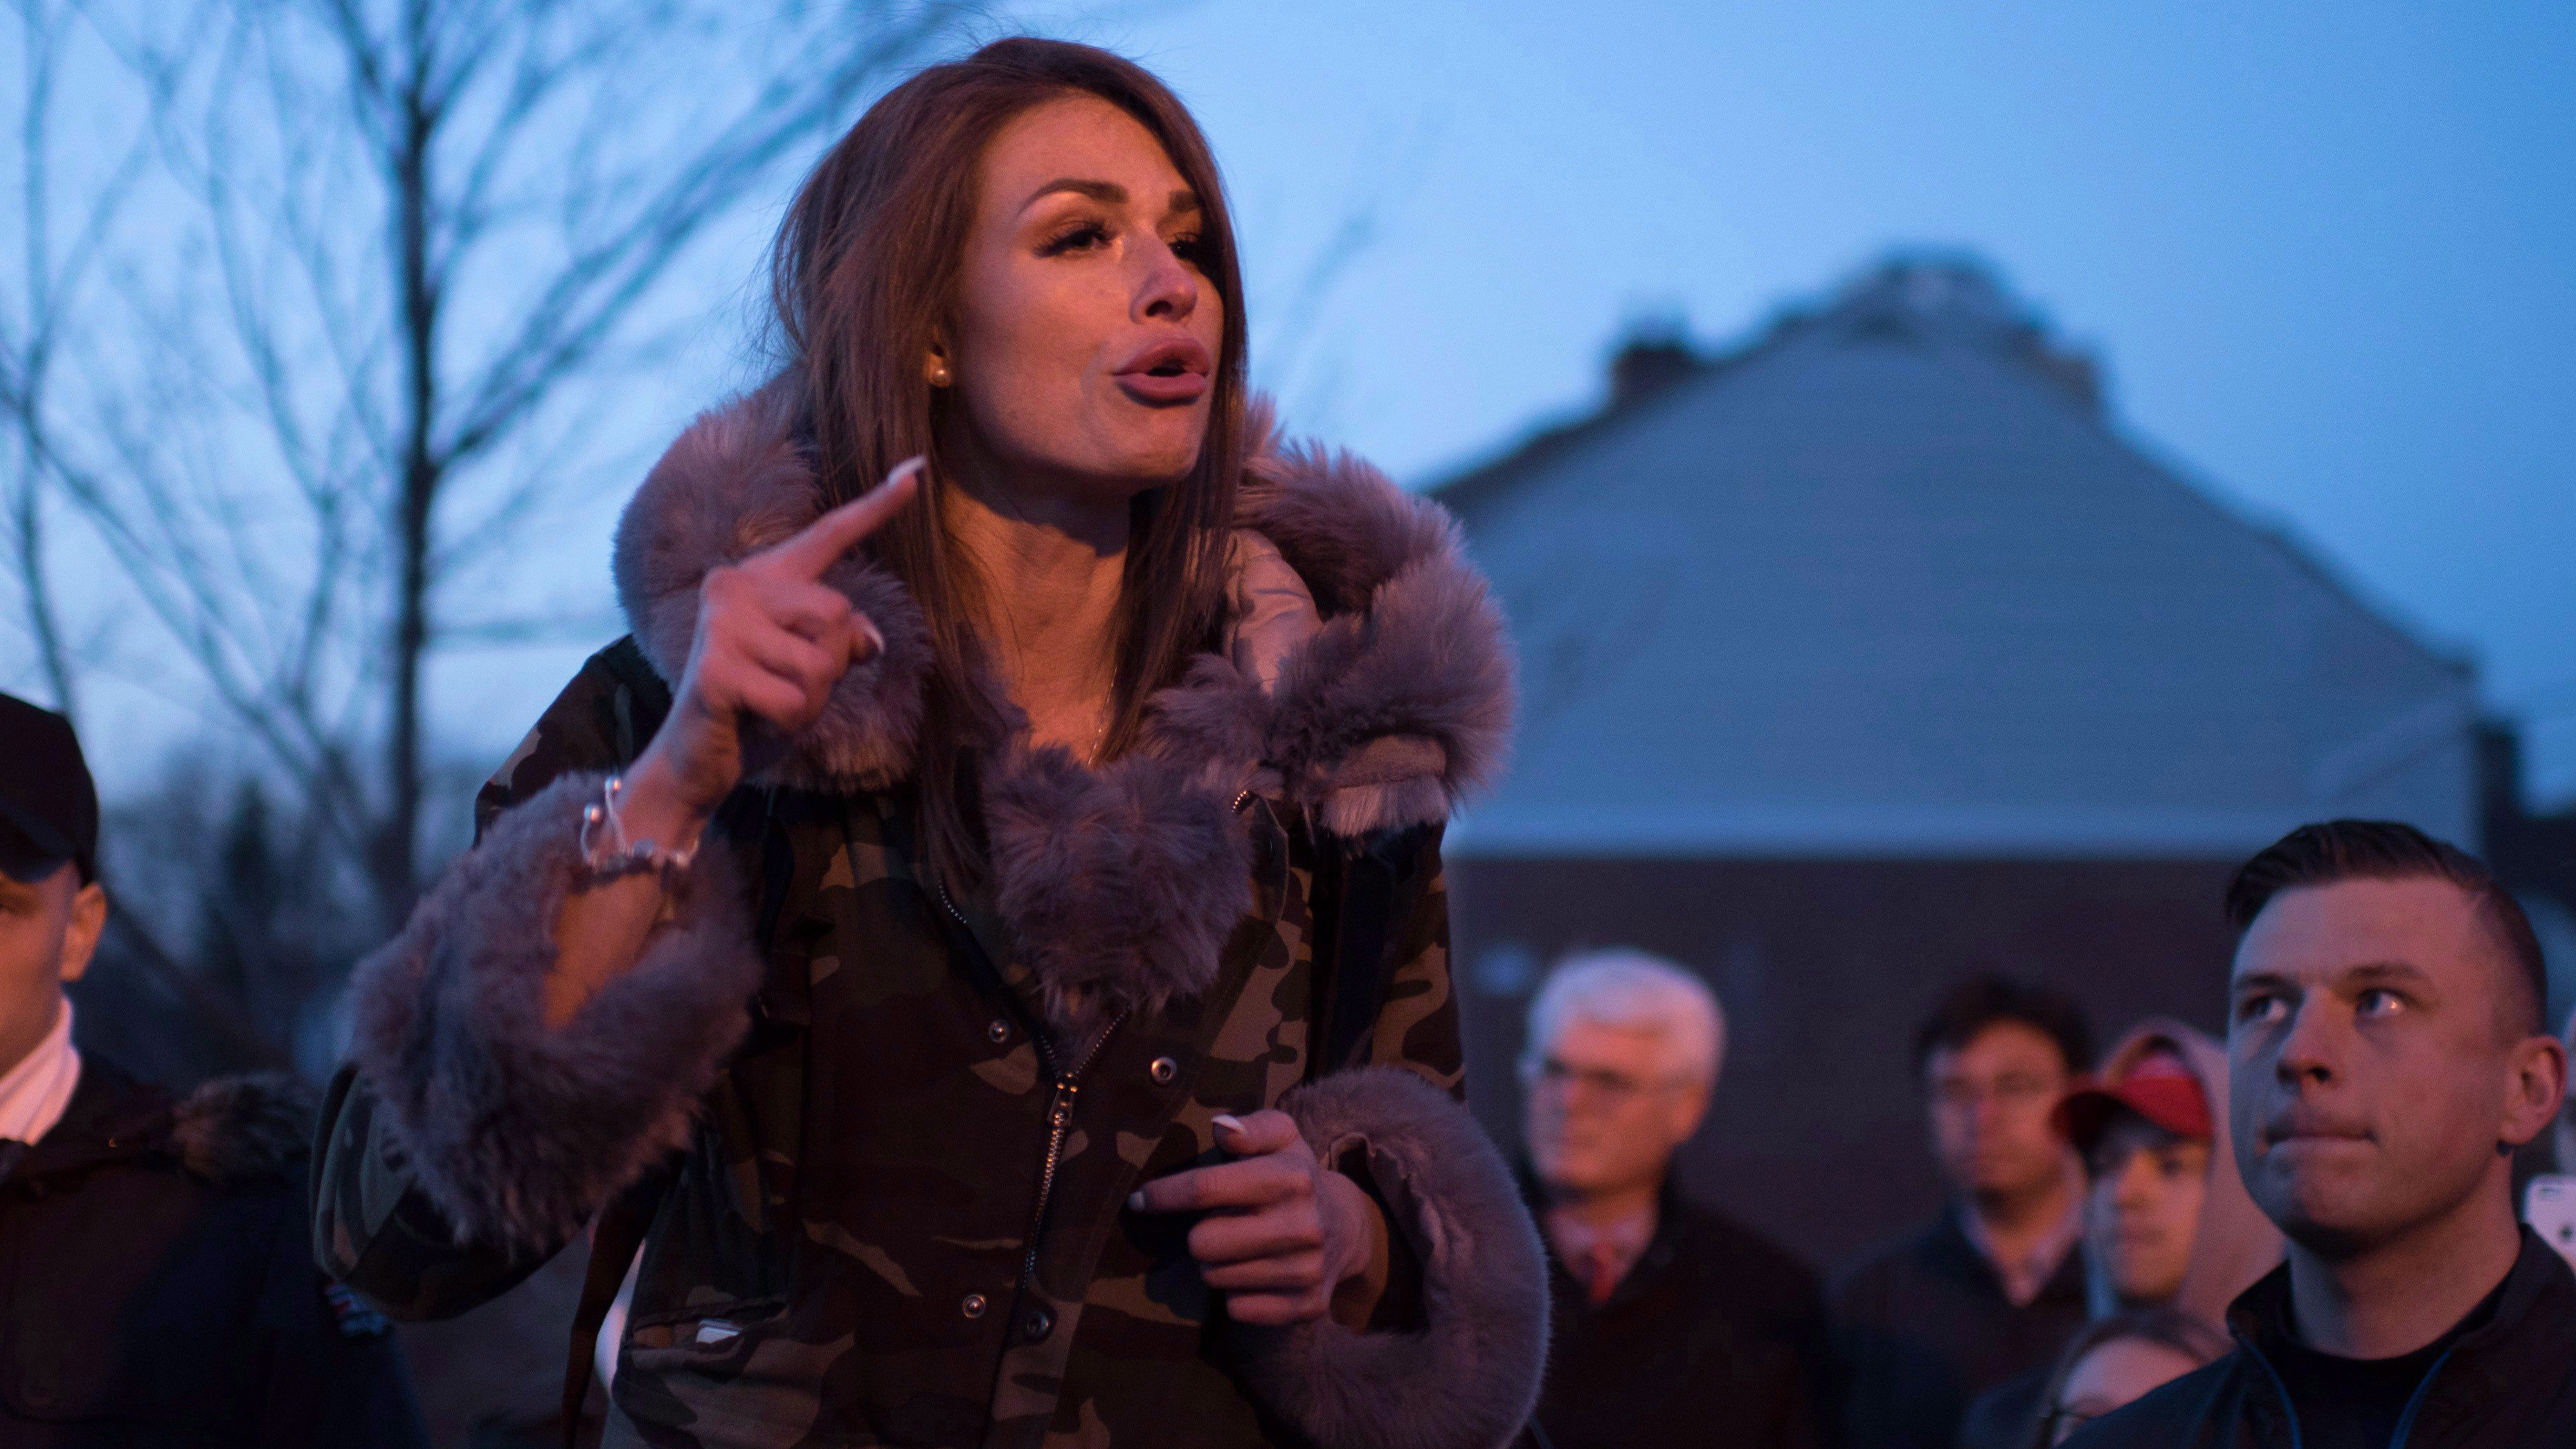 Facebook bans Faith Goldy in latest crackdown on extremist content